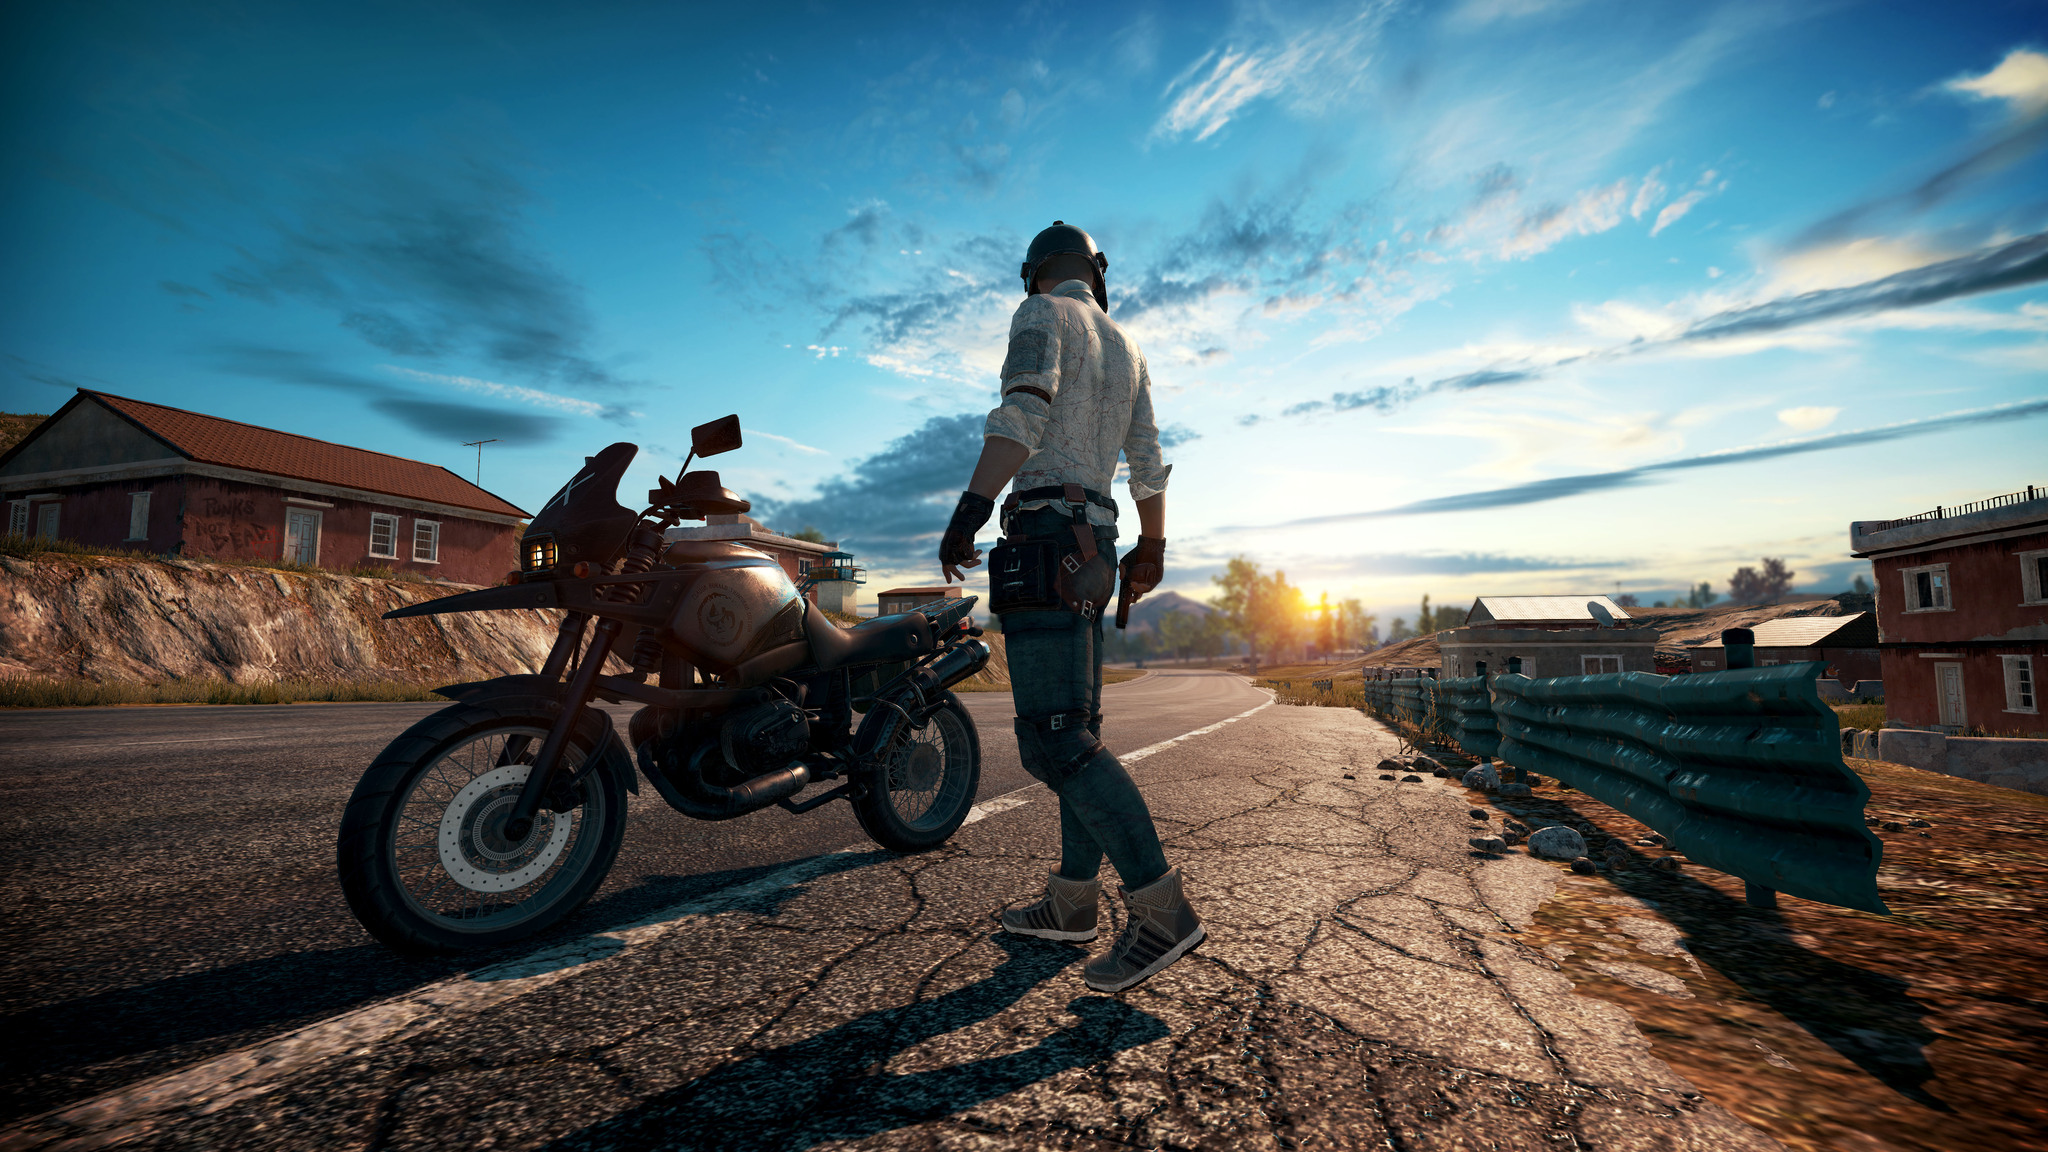 Pubg Wallpapers 4k Download: 2048x1152 PlayerUnknowns Battlegrounds 5k Screenshot